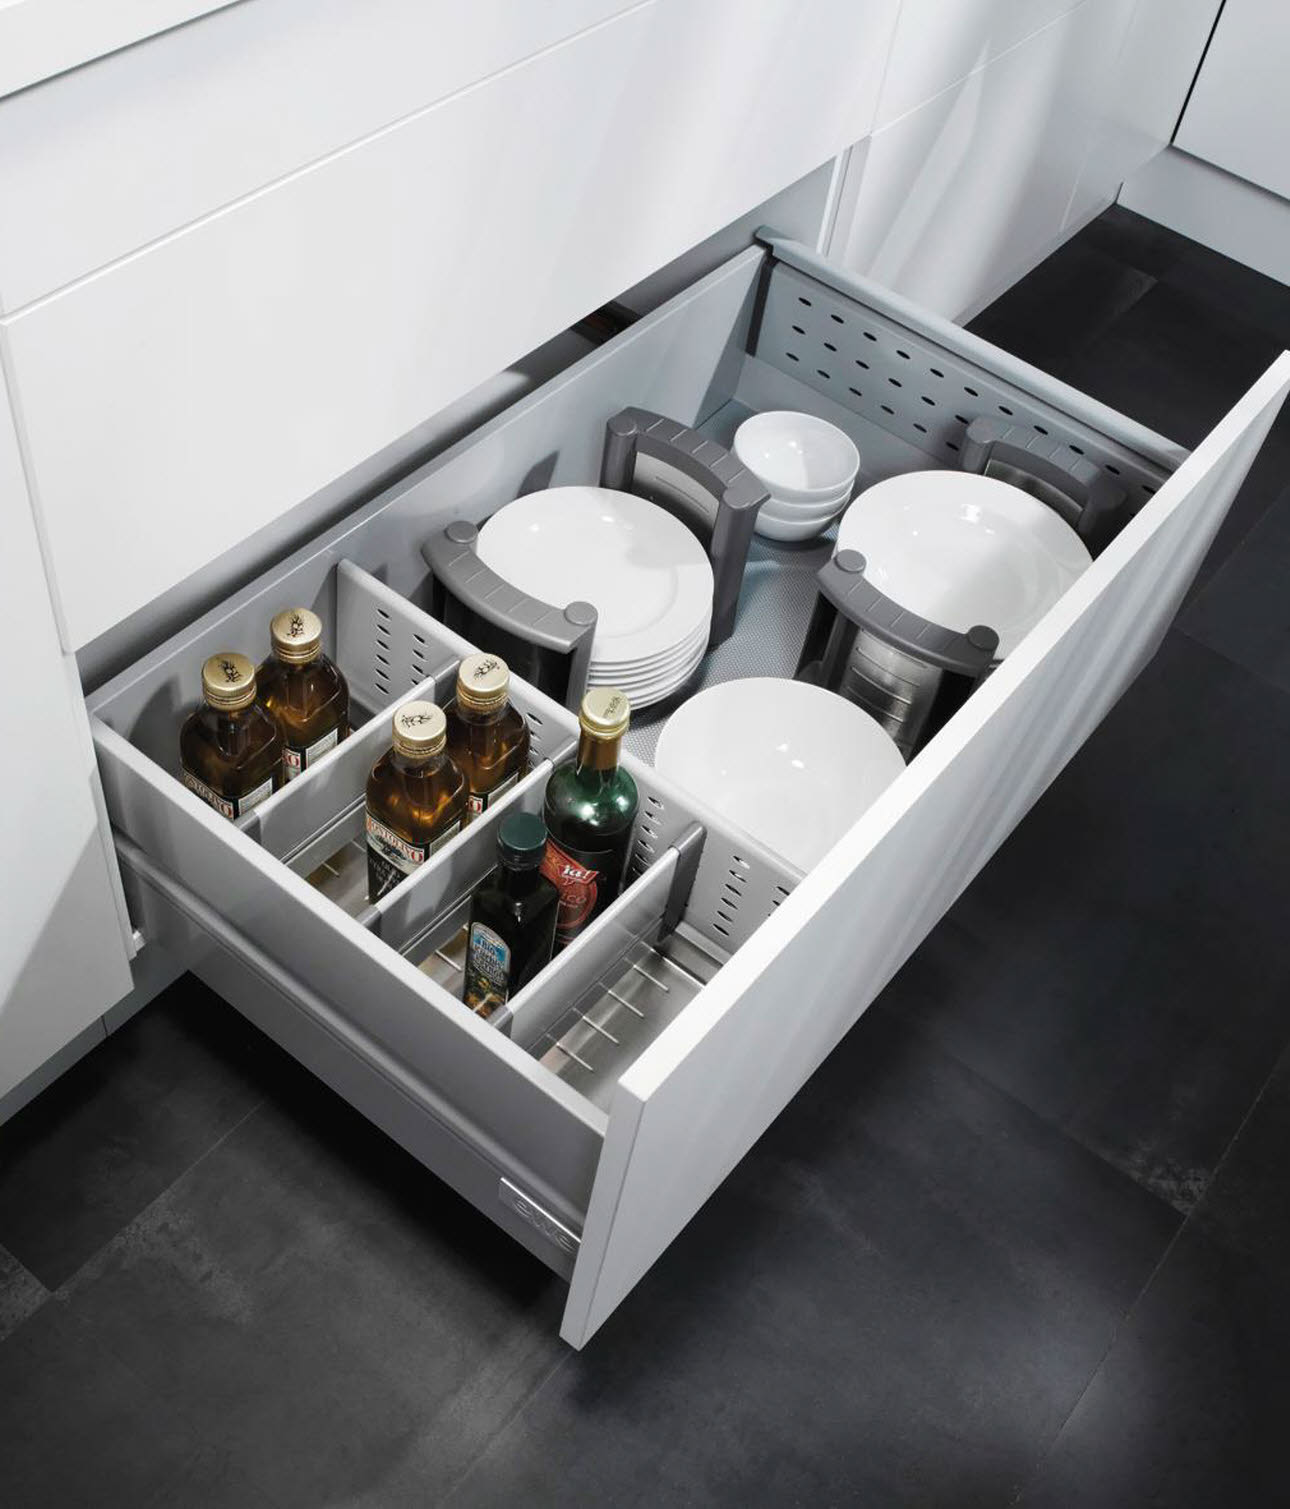 Roller basket fitting with bottle tray